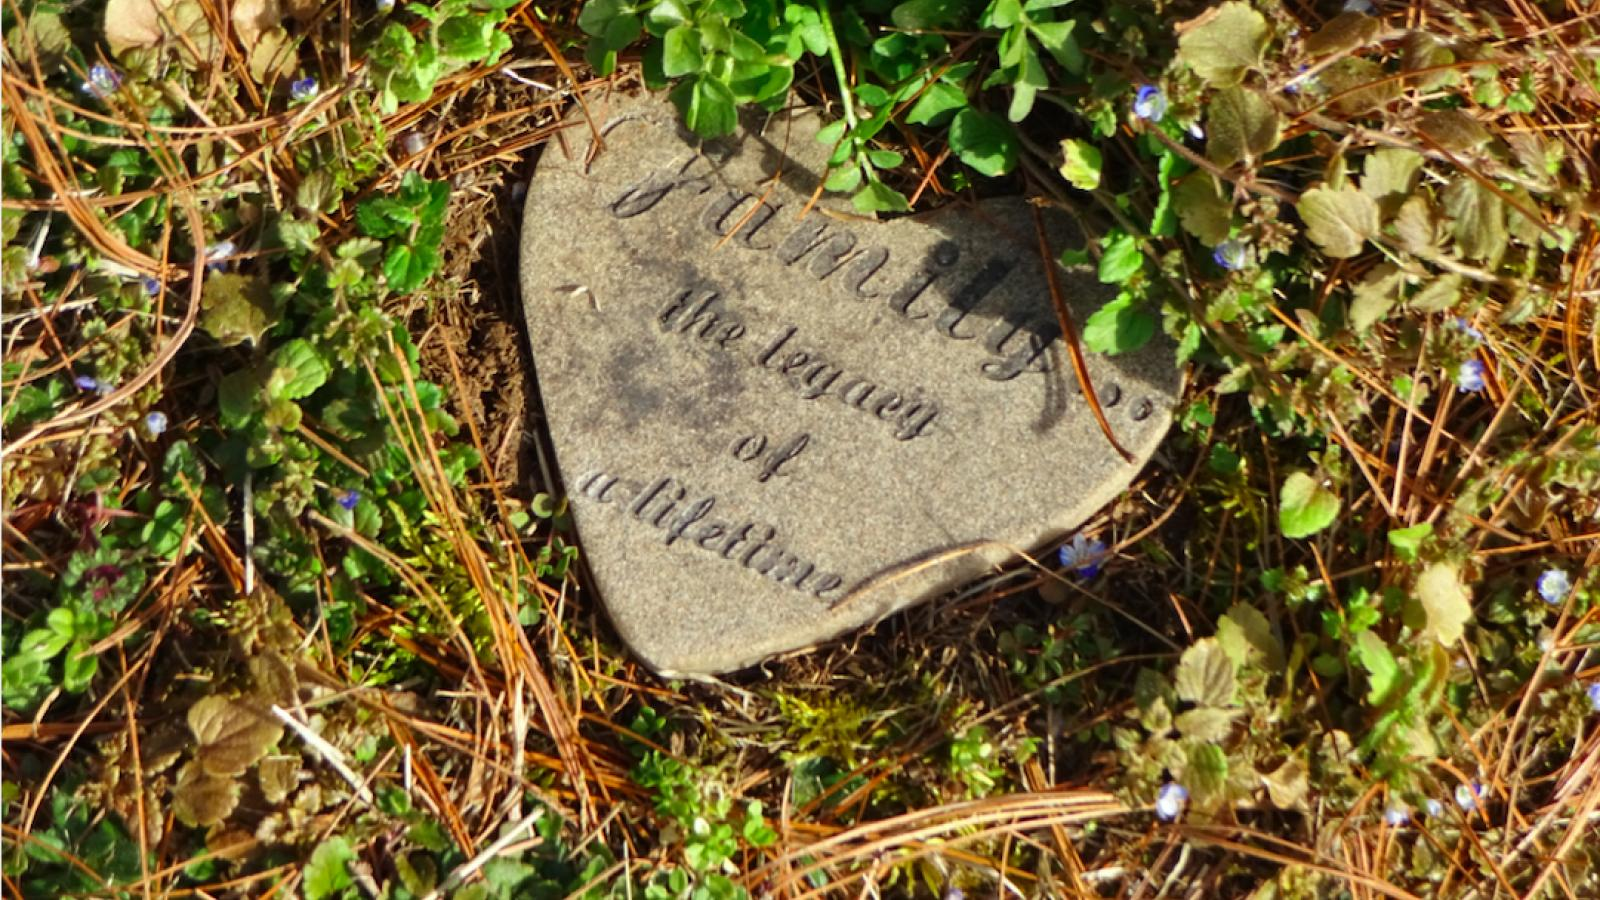 Stone above Lloyd Allen and Geraldine's headstone, placed there by Marlita Cadogan